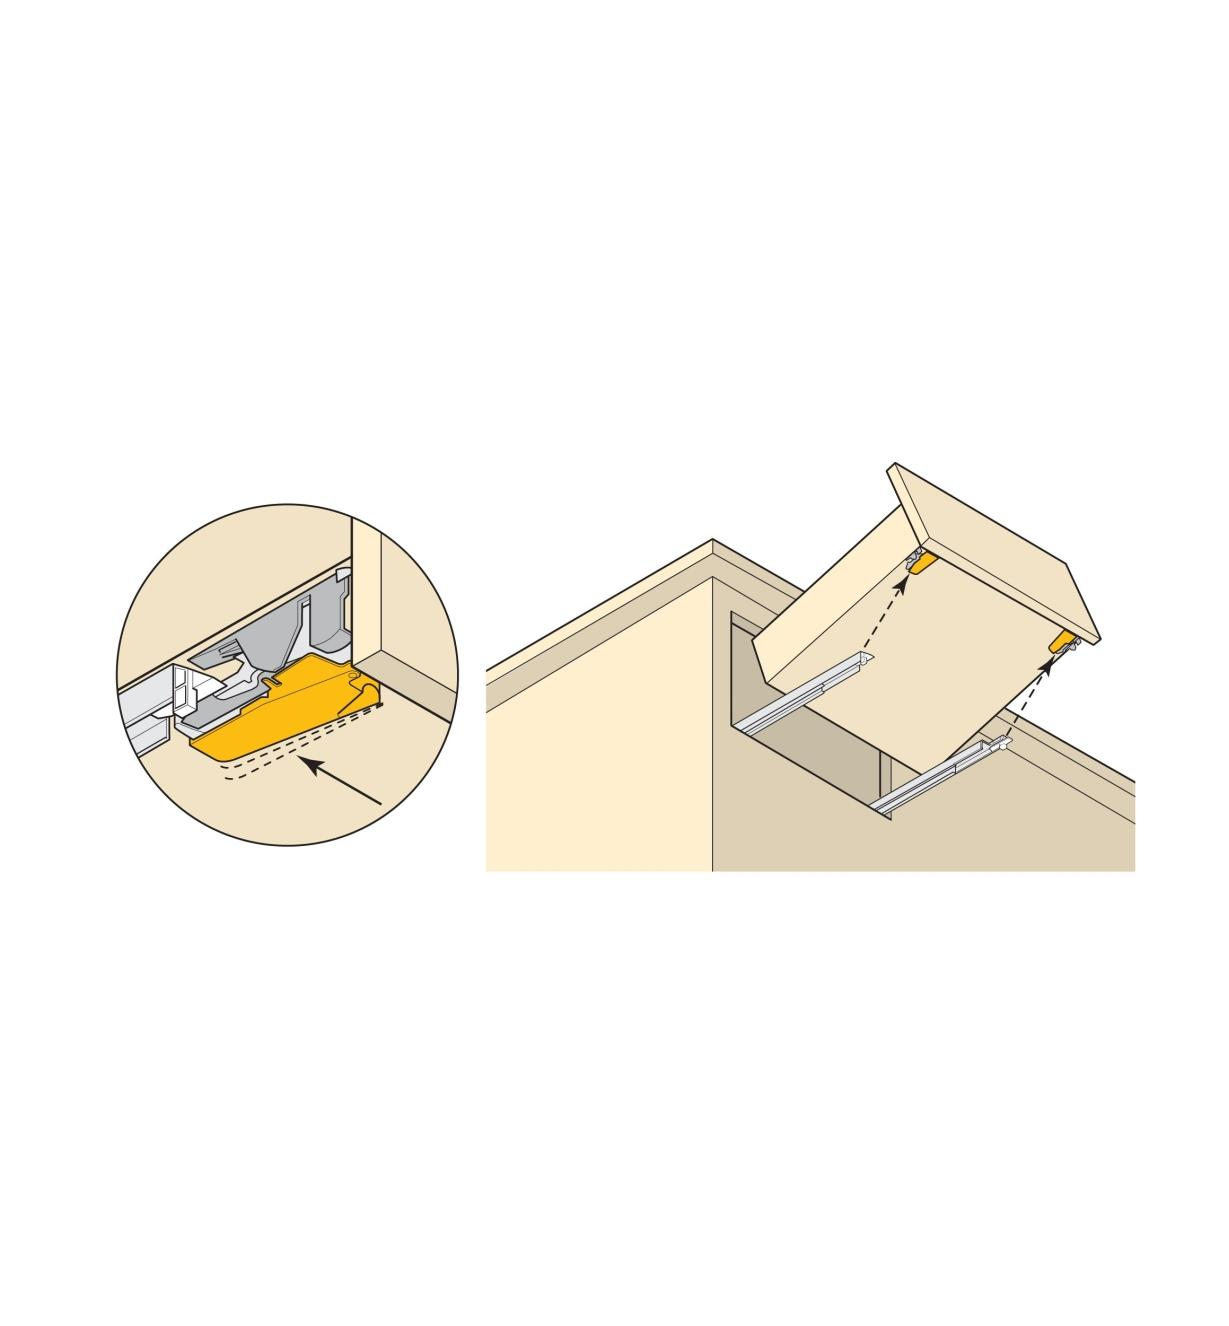 Illustration shows how a lever disengages the drawer from the rail to allow drawer removal